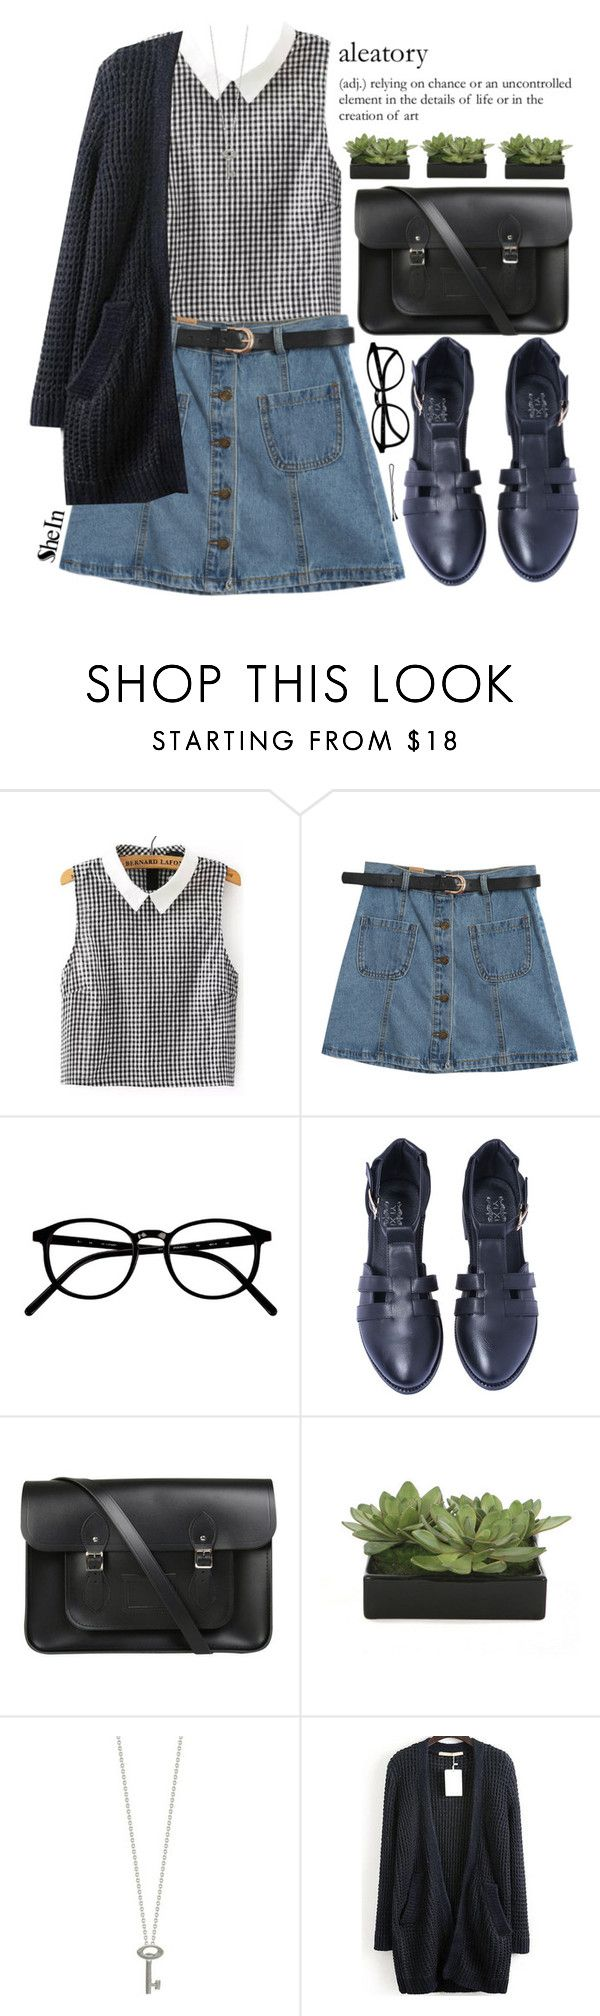 """Aleatory"" by mihreta-m on Polyvore featuring Chicnova Fashion, The Cambridge Satchel Company, Lux-Art Silks, BOBBY, Roberto Coin and shein"